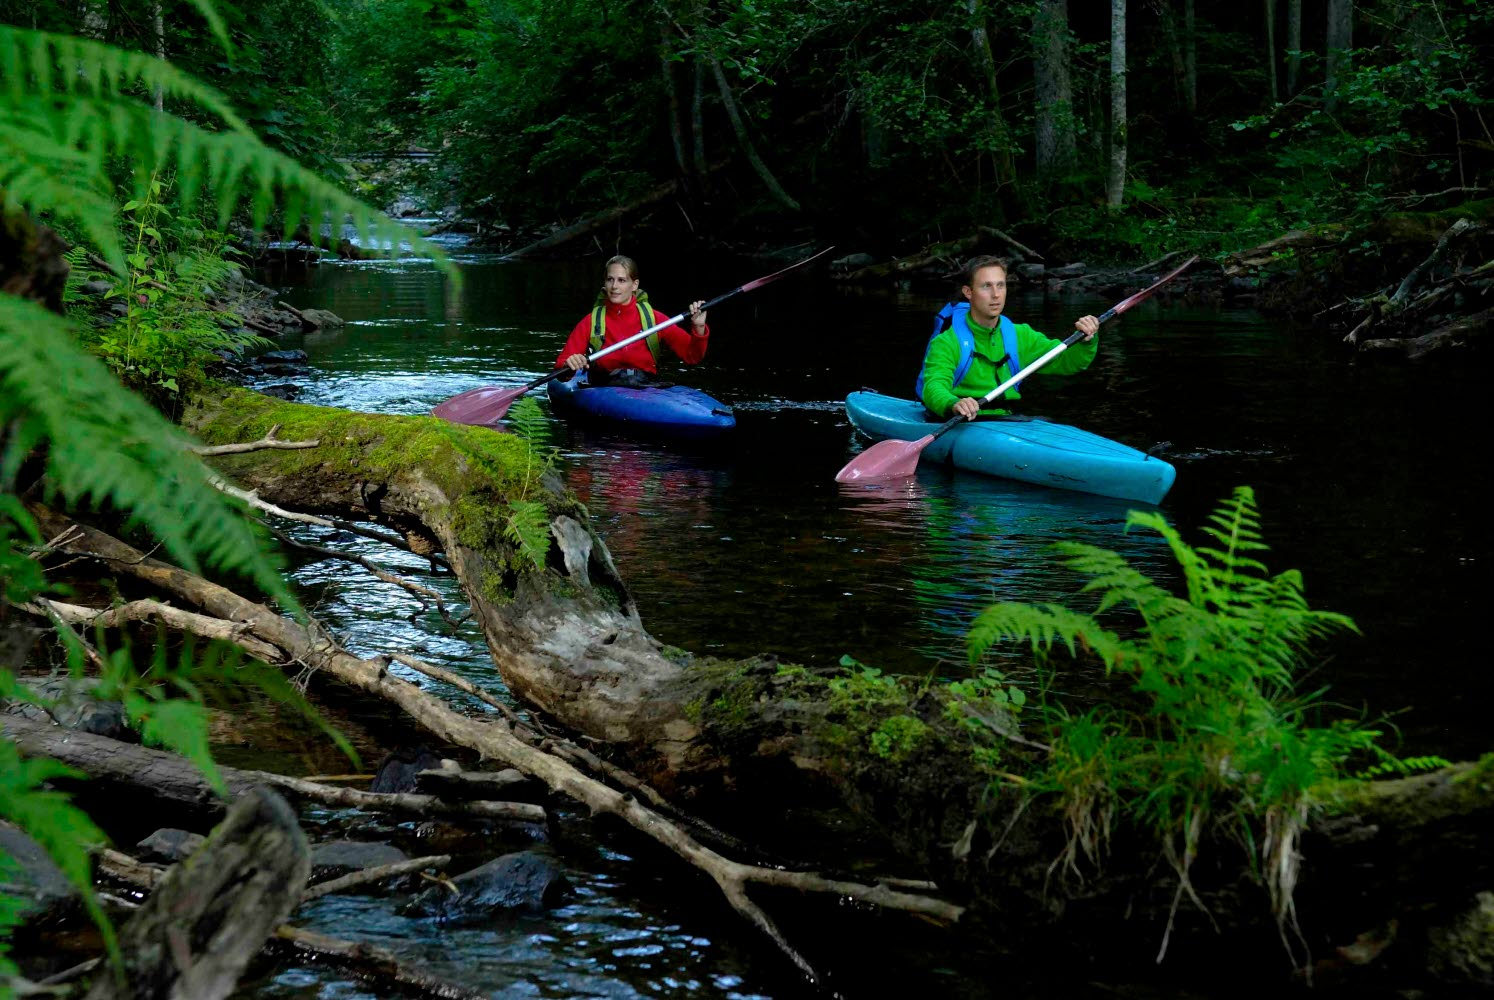 Couple kayaking on a river surrounded by forest - Photo Göran Assner.jpg